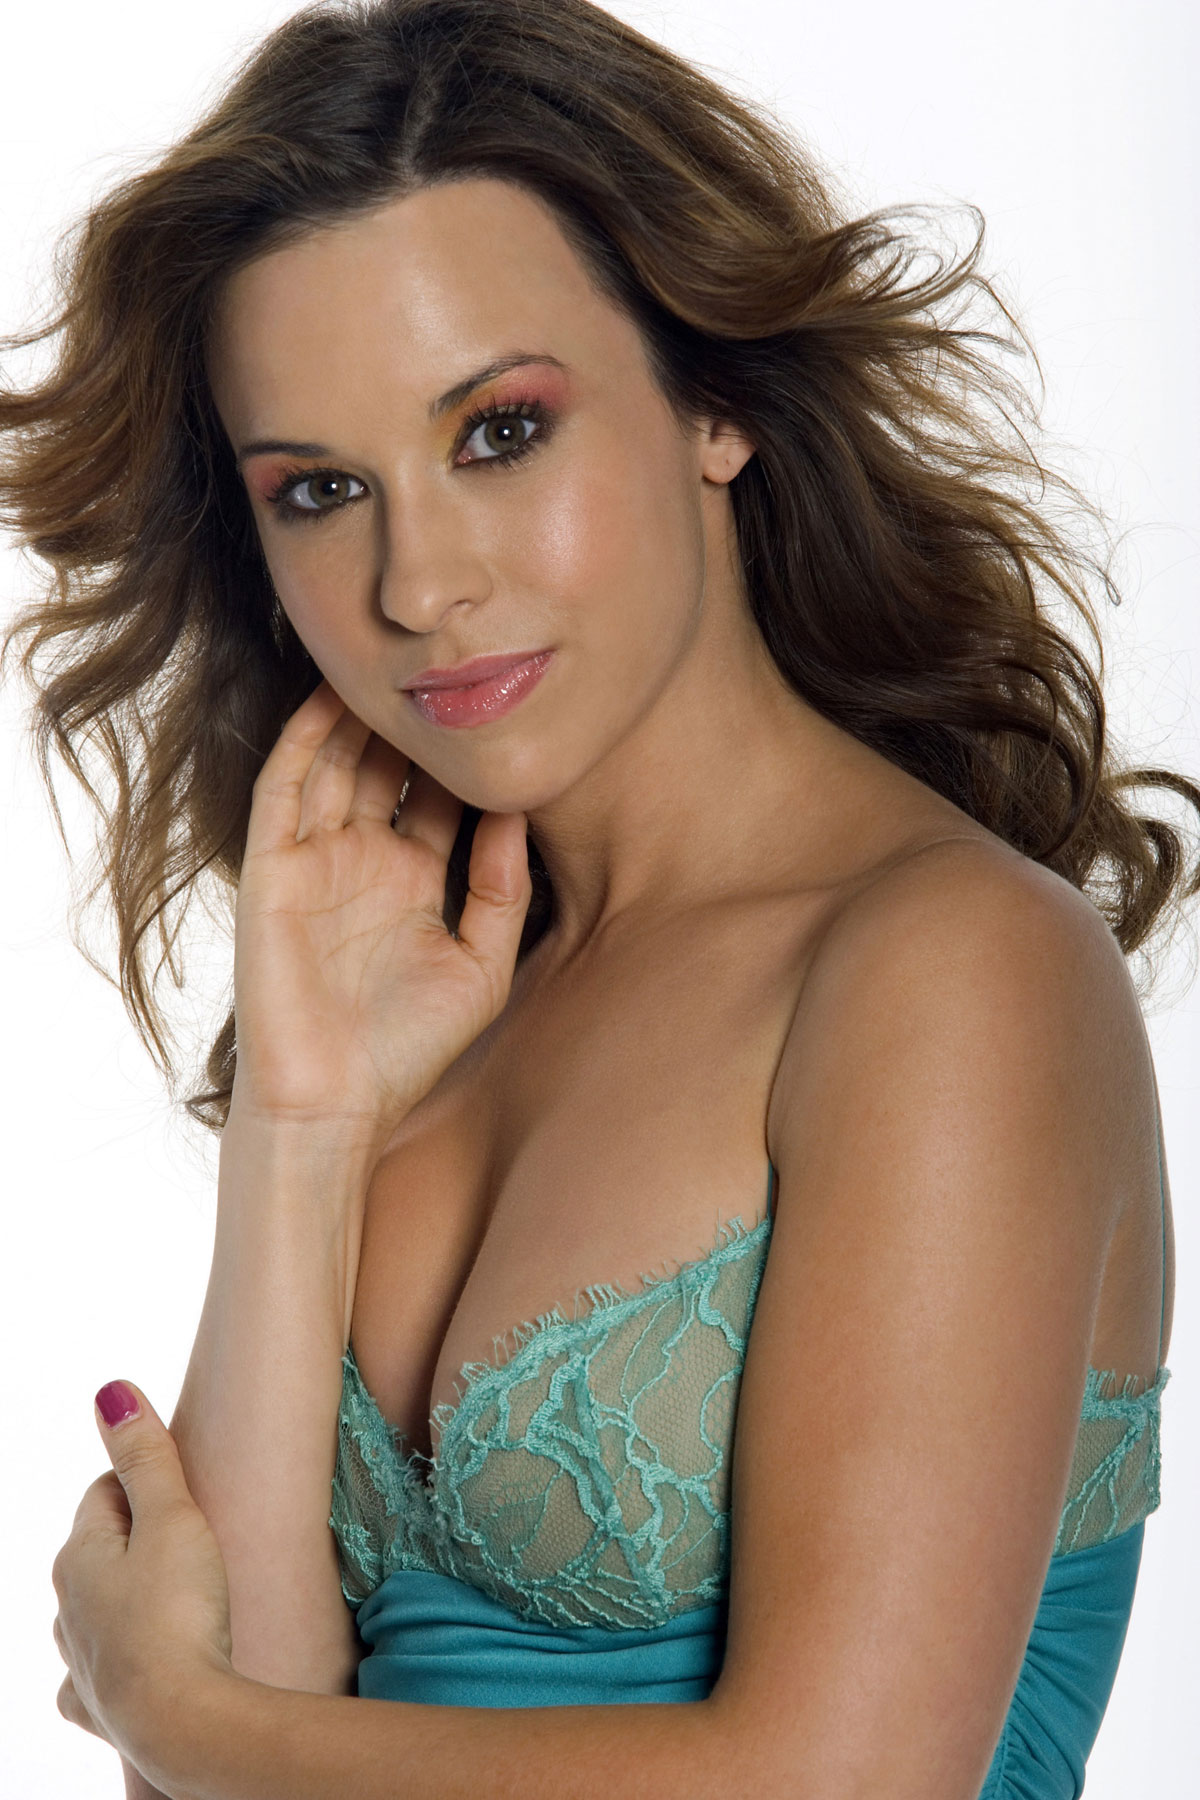 Lacey Chabert nudes (58 photo), Ass, Sideboobs, Instagram, cleavage 2015